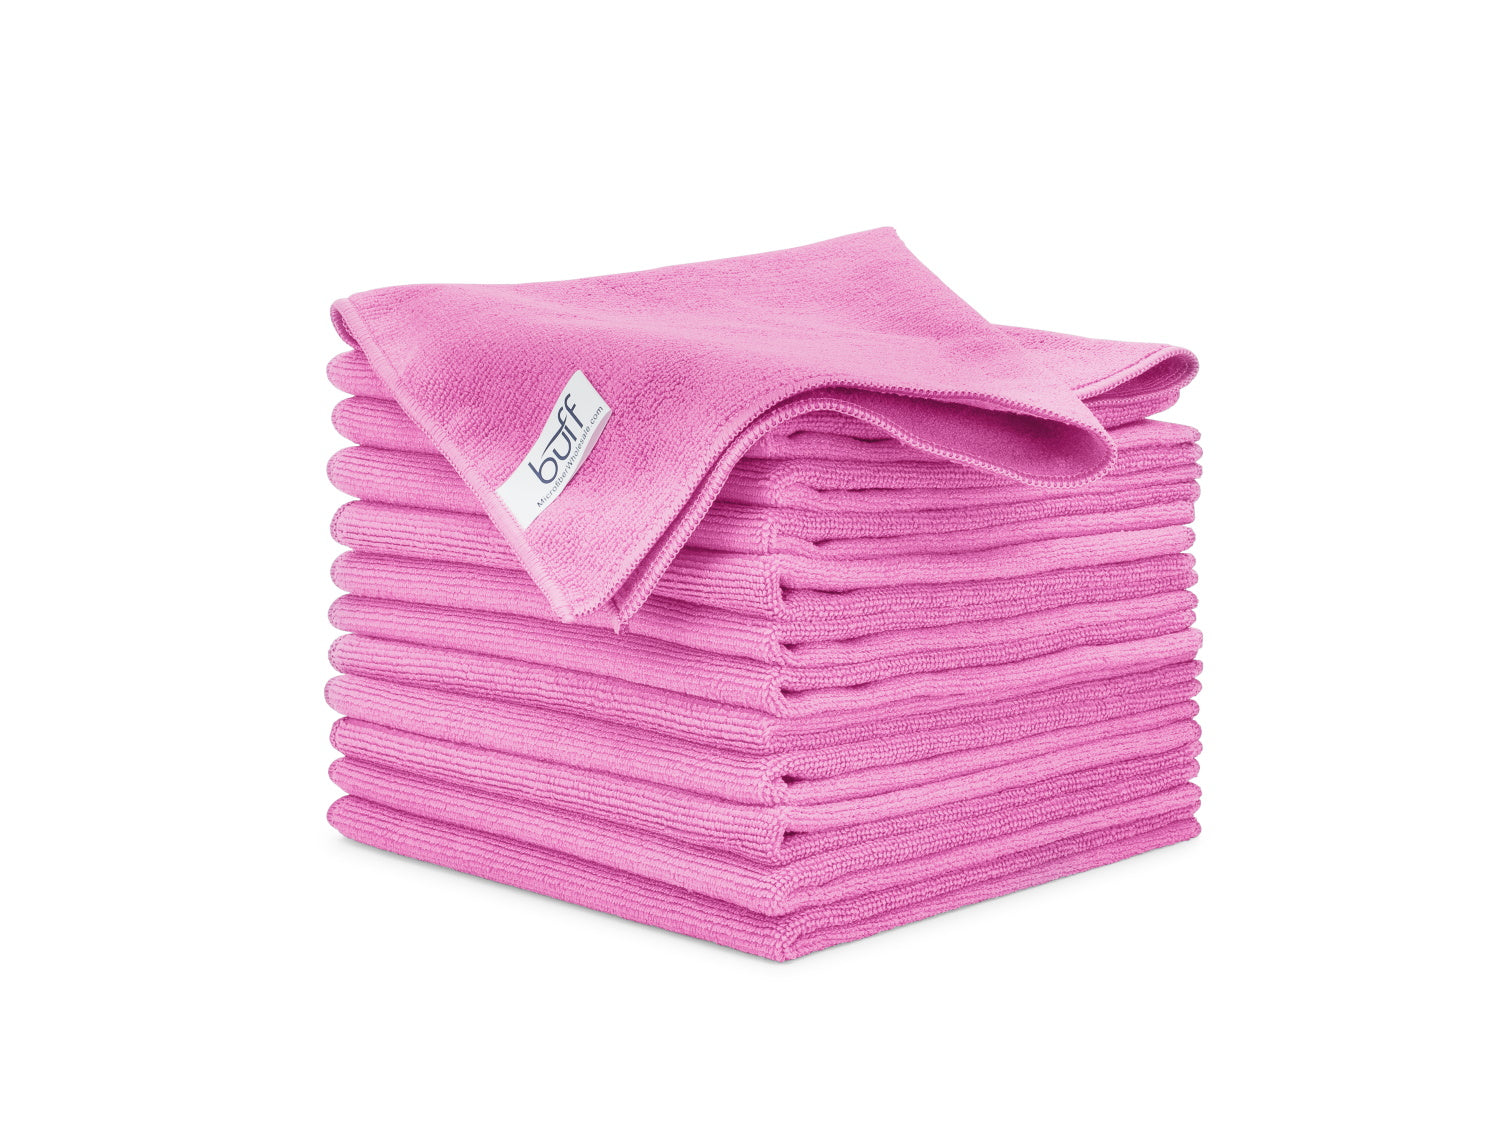 Pink Microfiber Towels 12 Pack